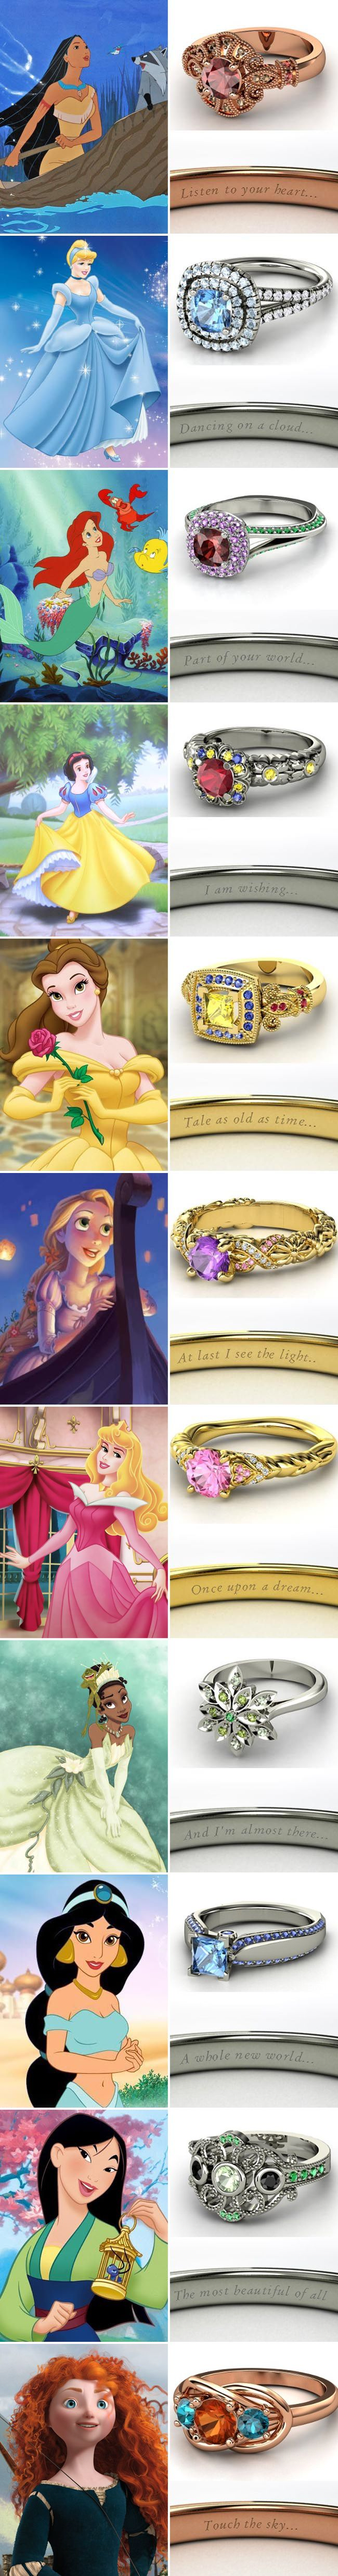 Disney princess wedding rings and more ideas for diehard #DisneyPrincess fans! I want them all!!!